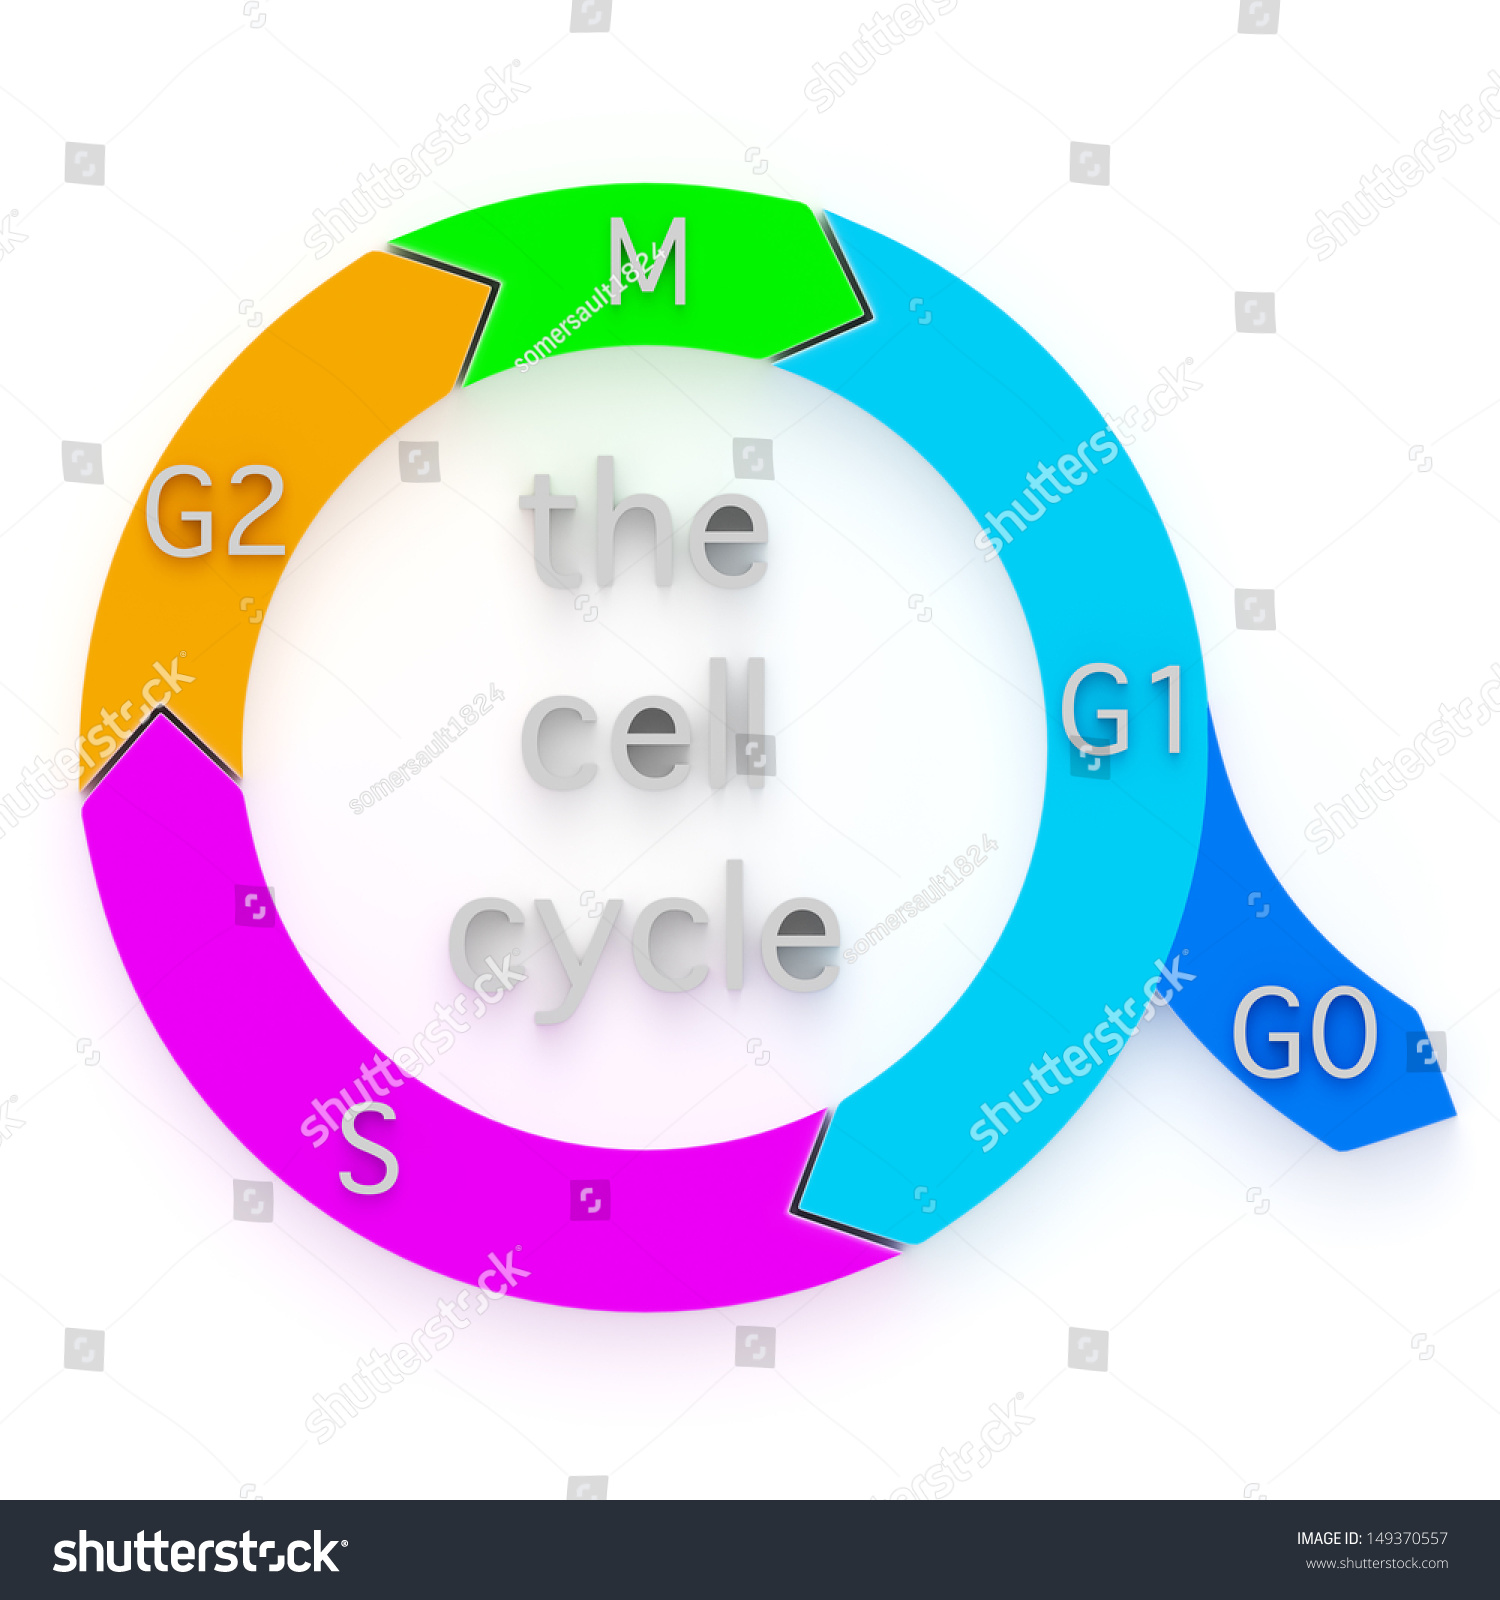 Diagram showing sequential phases cell cycle stock illustration diagram showing the sequential phases of the cell cycle or cell division cycle nvjuhfo Image collections